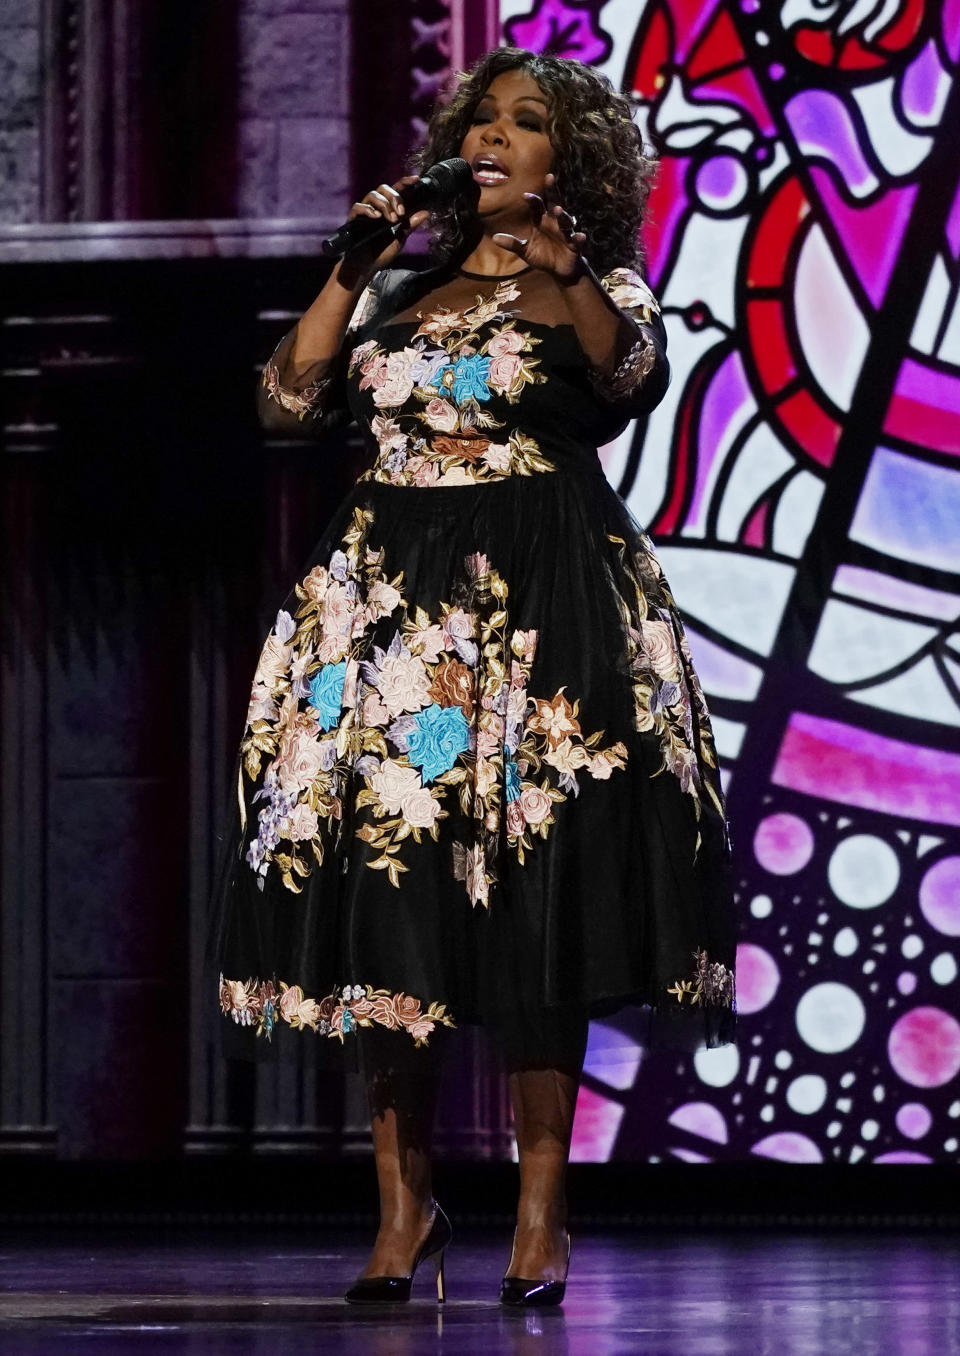 CeCe Winans performs at the 56th annual Academy of Country Music Awards on Saturday, April 17, 2021, at the Grand Ole Opry in Nashville, Tenn. The awards show airs on April 18 with both live and prerecorded segments. (AP Photo/Mark Humphrey)